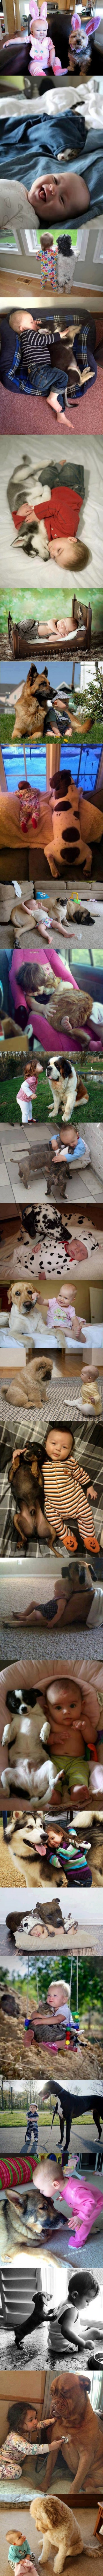 funny-picture-babies-animals